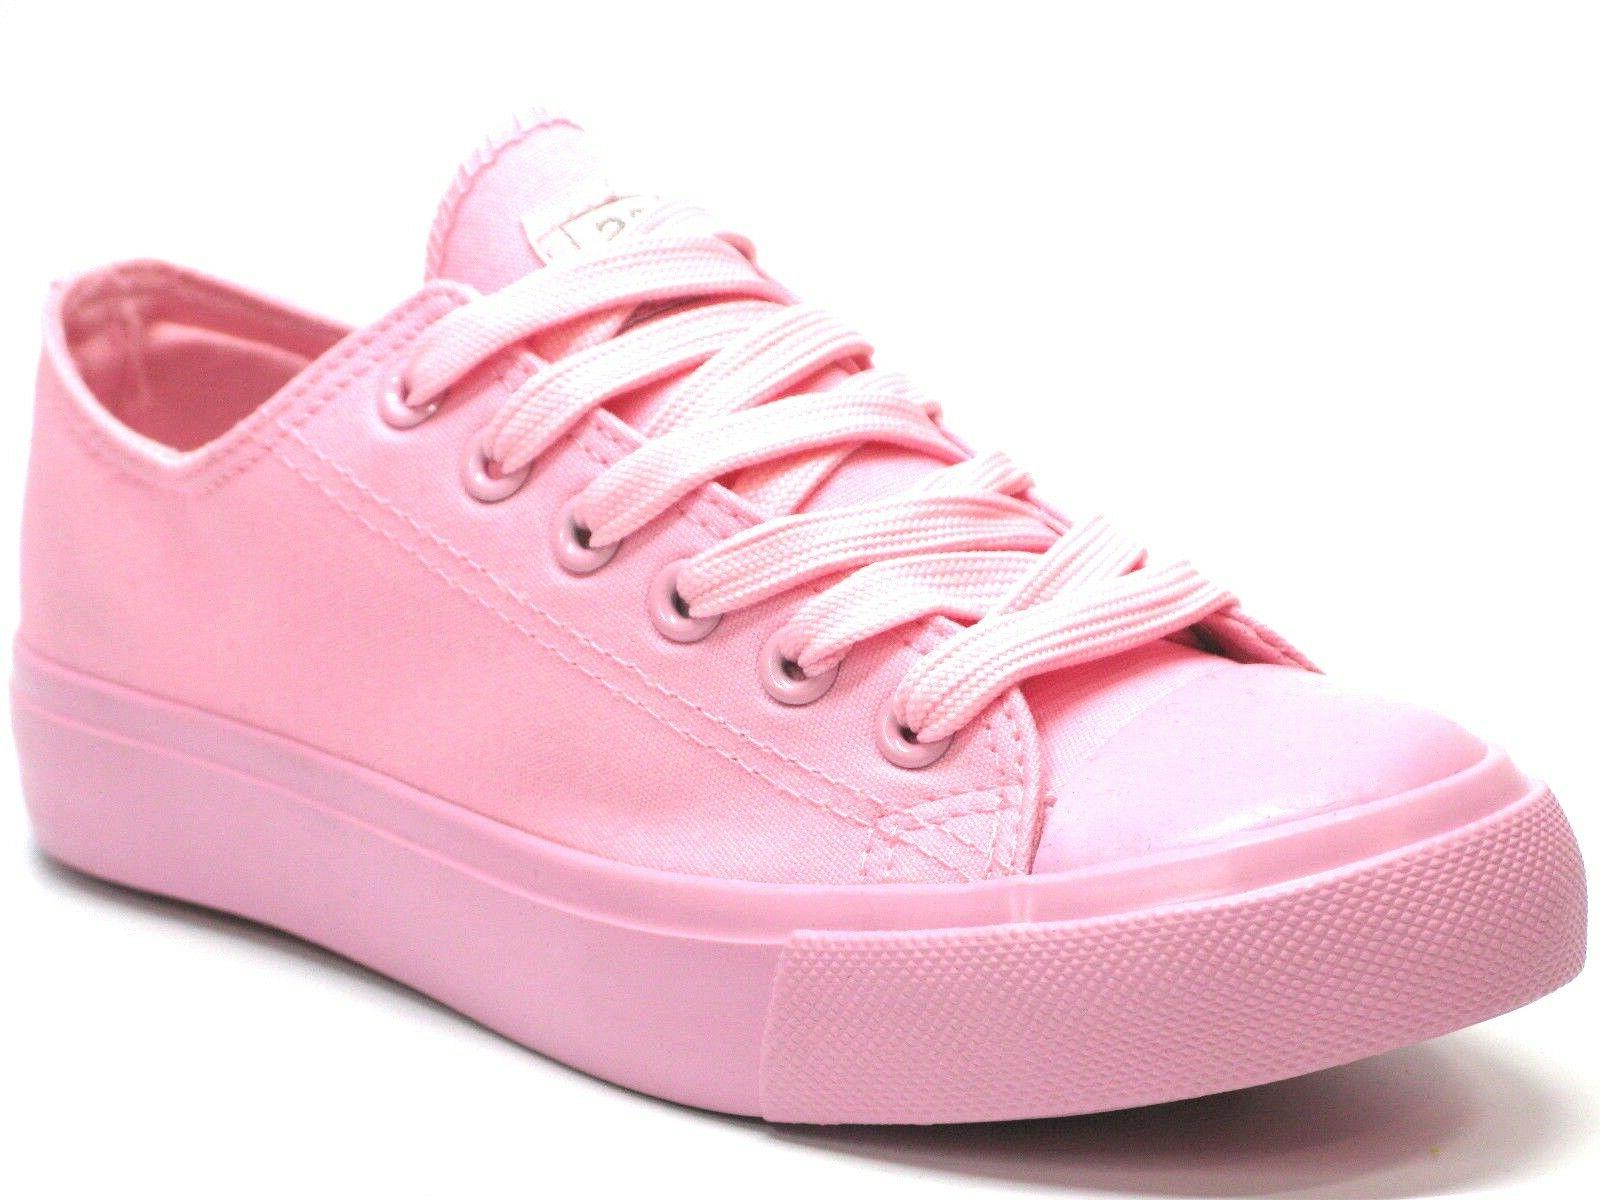 New Girls Lace Up Casual Comfort Sneakers Colors